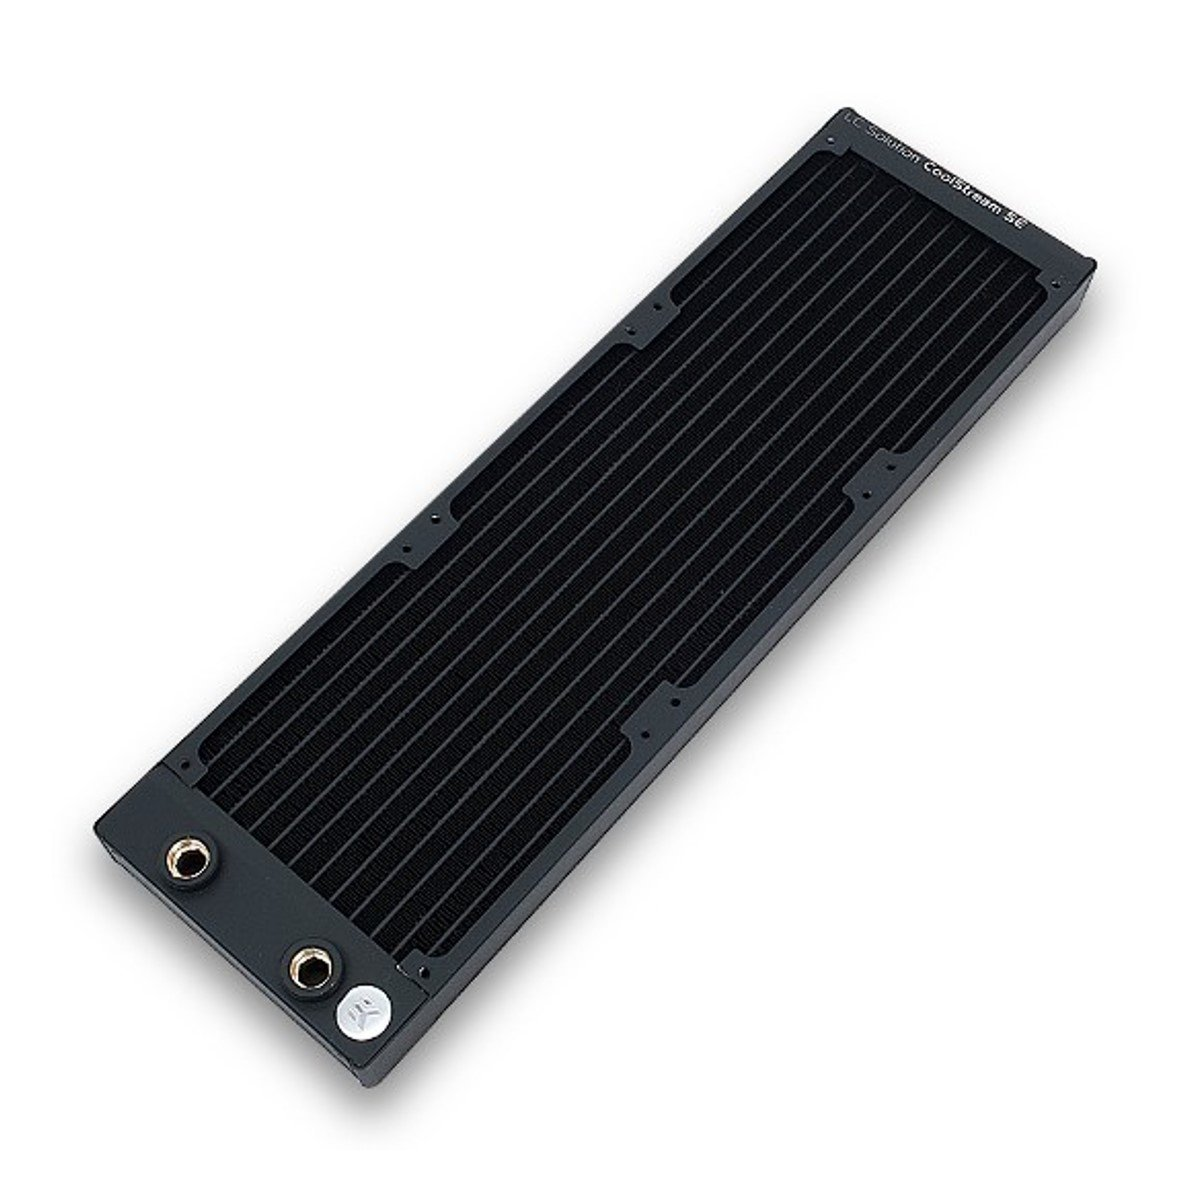 EKWB EK-CoolStream SE 360 Radiator, Slim Triple, Black by EKWB